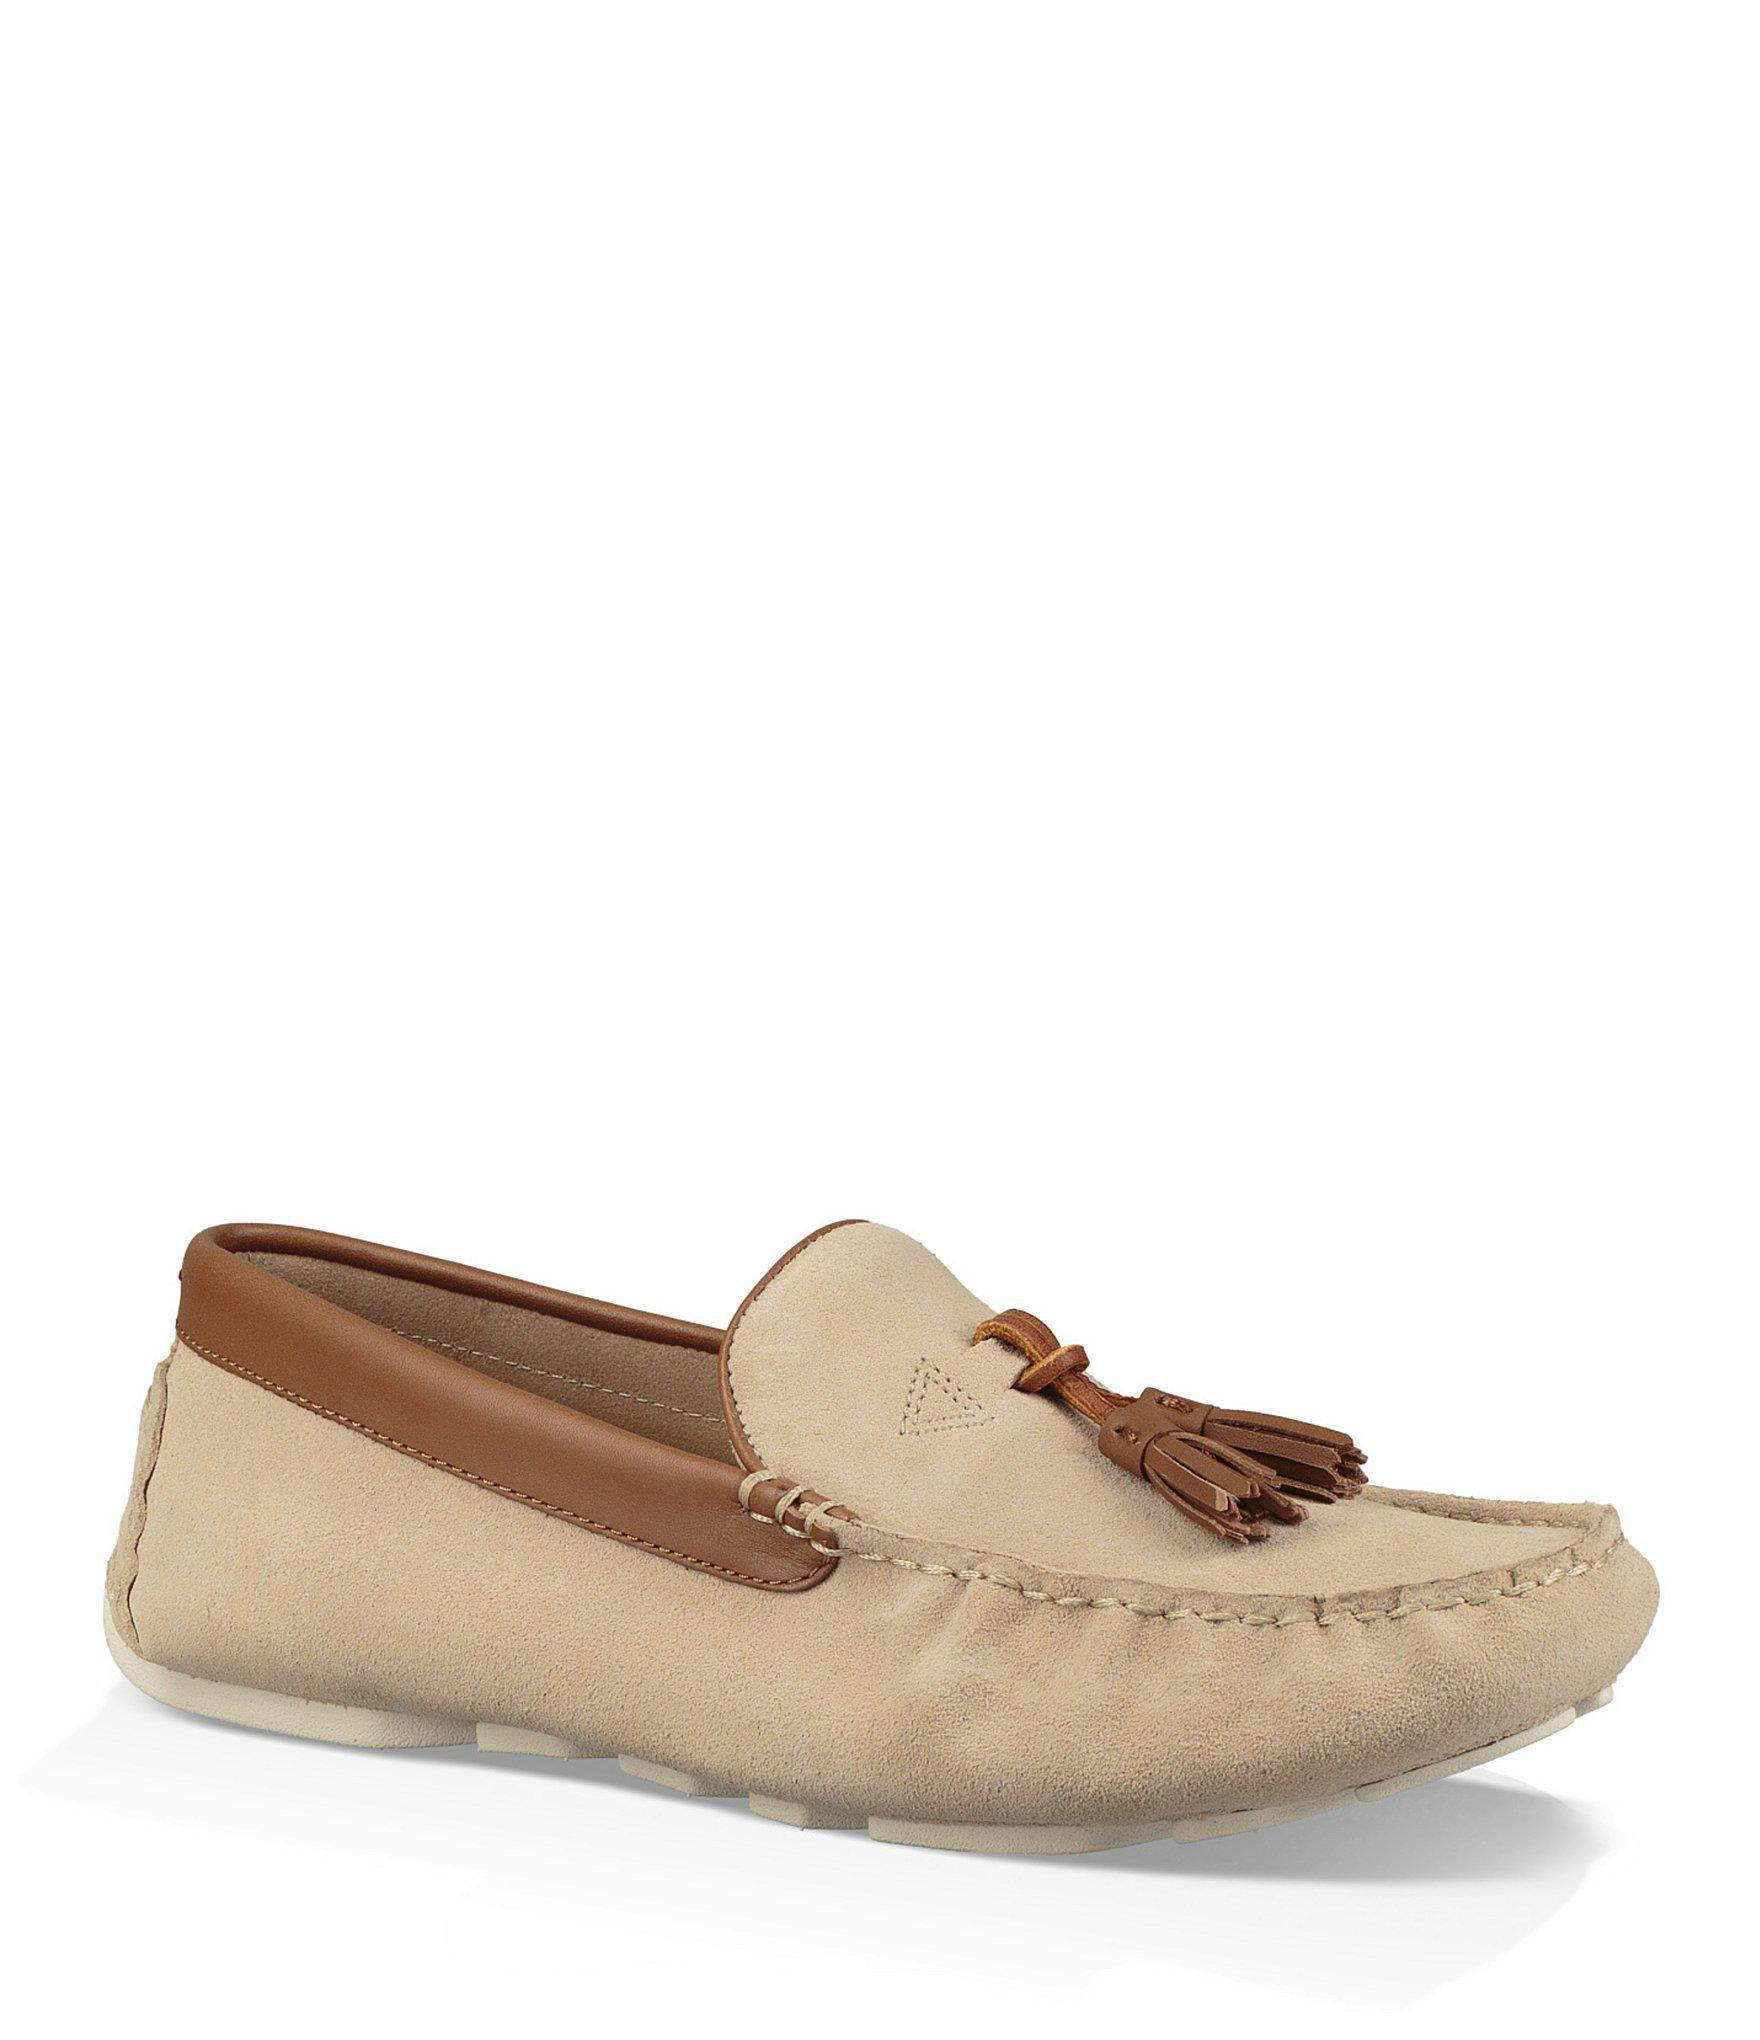 2b095f767330 Lyst - UGG Mens Marris Slippers in Brown for Men